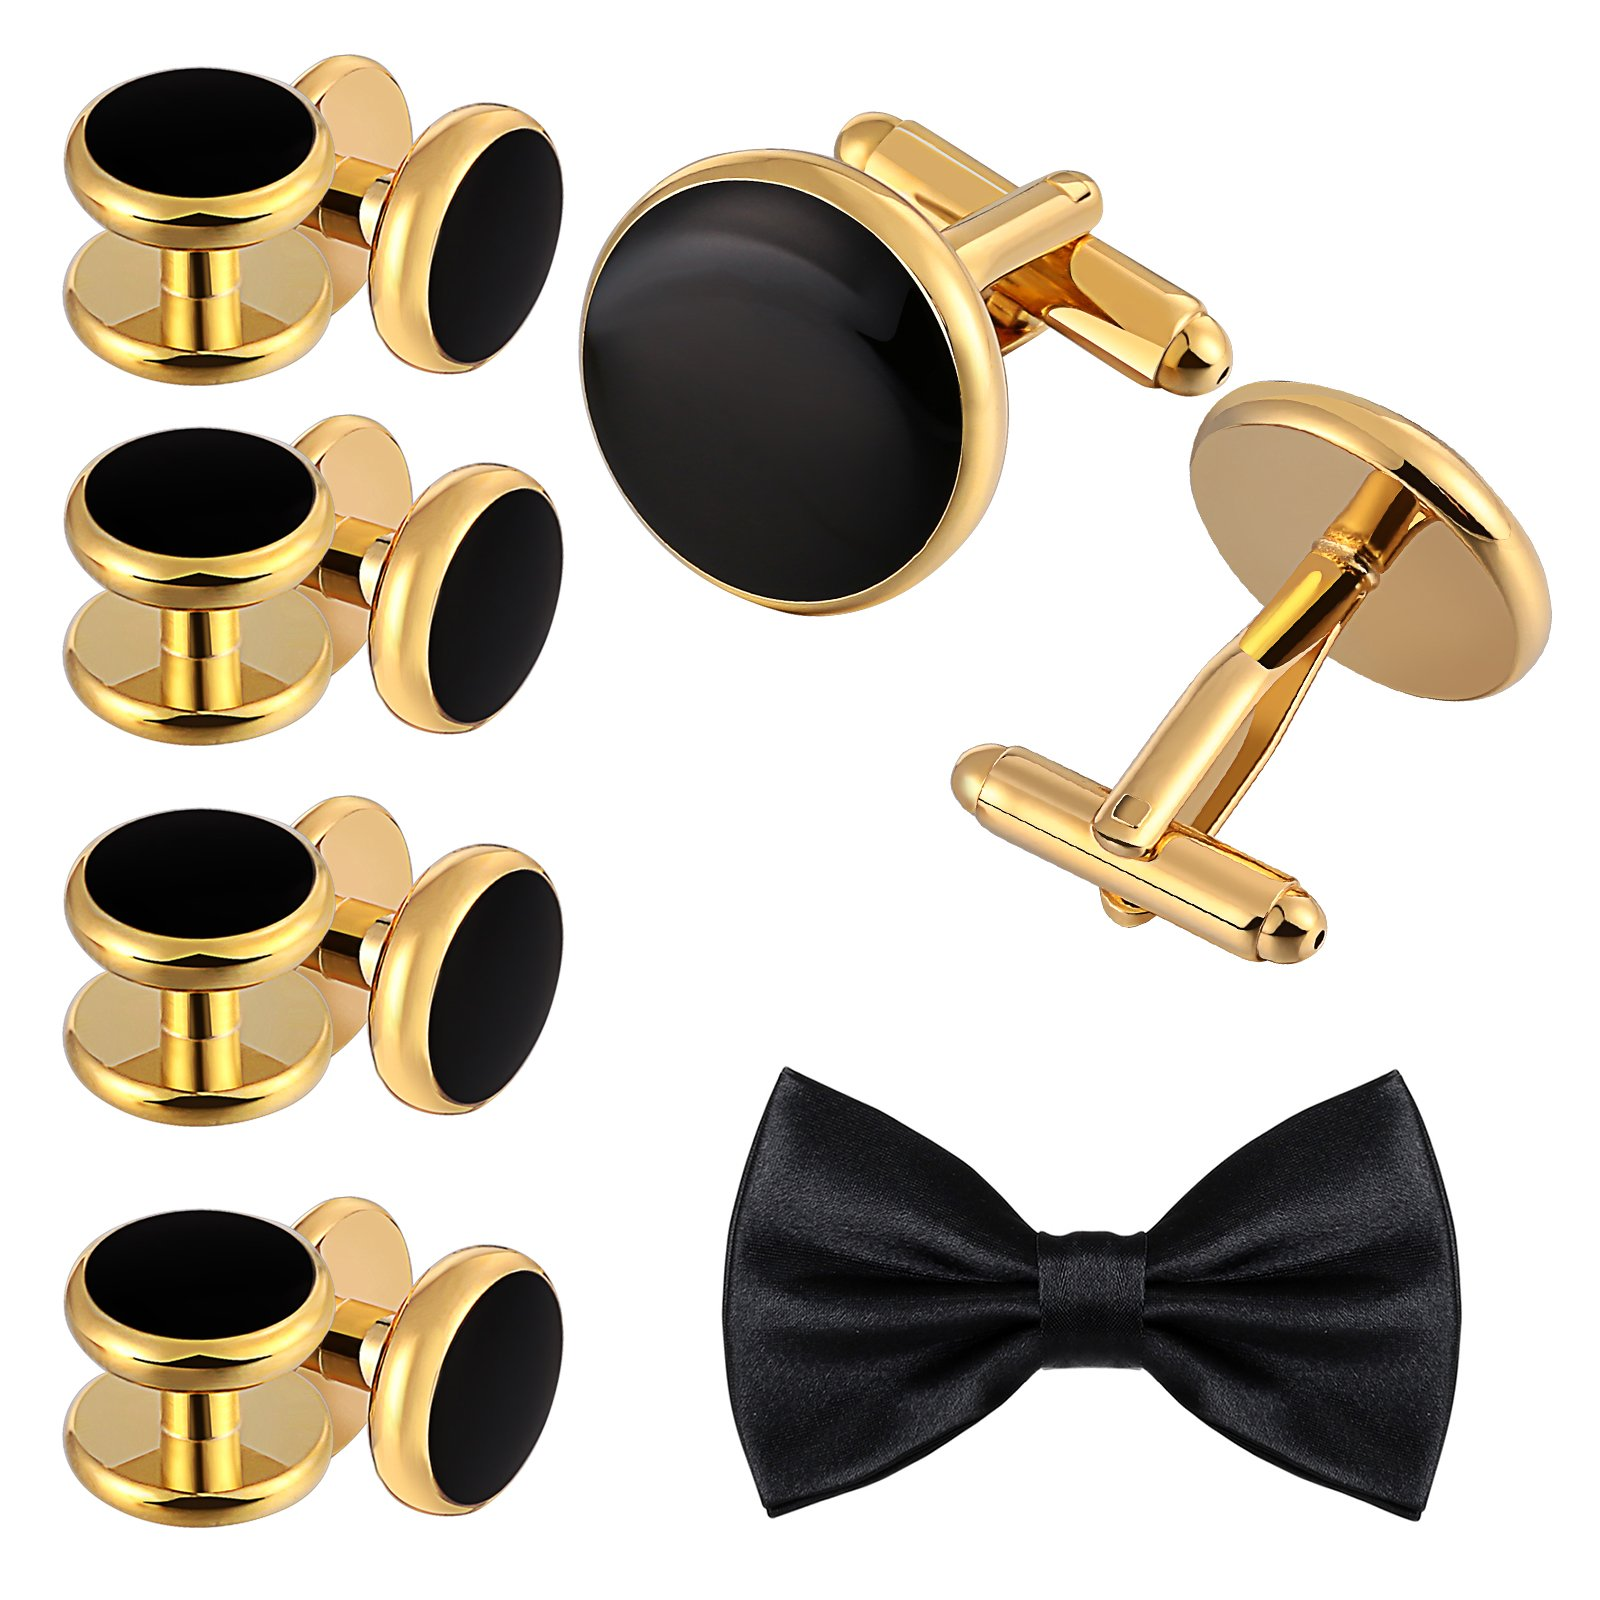 Aienid Cufflinks Black for Men Cufflinks and Studs Set Gold Stainless Steel Accessories Shirt Business